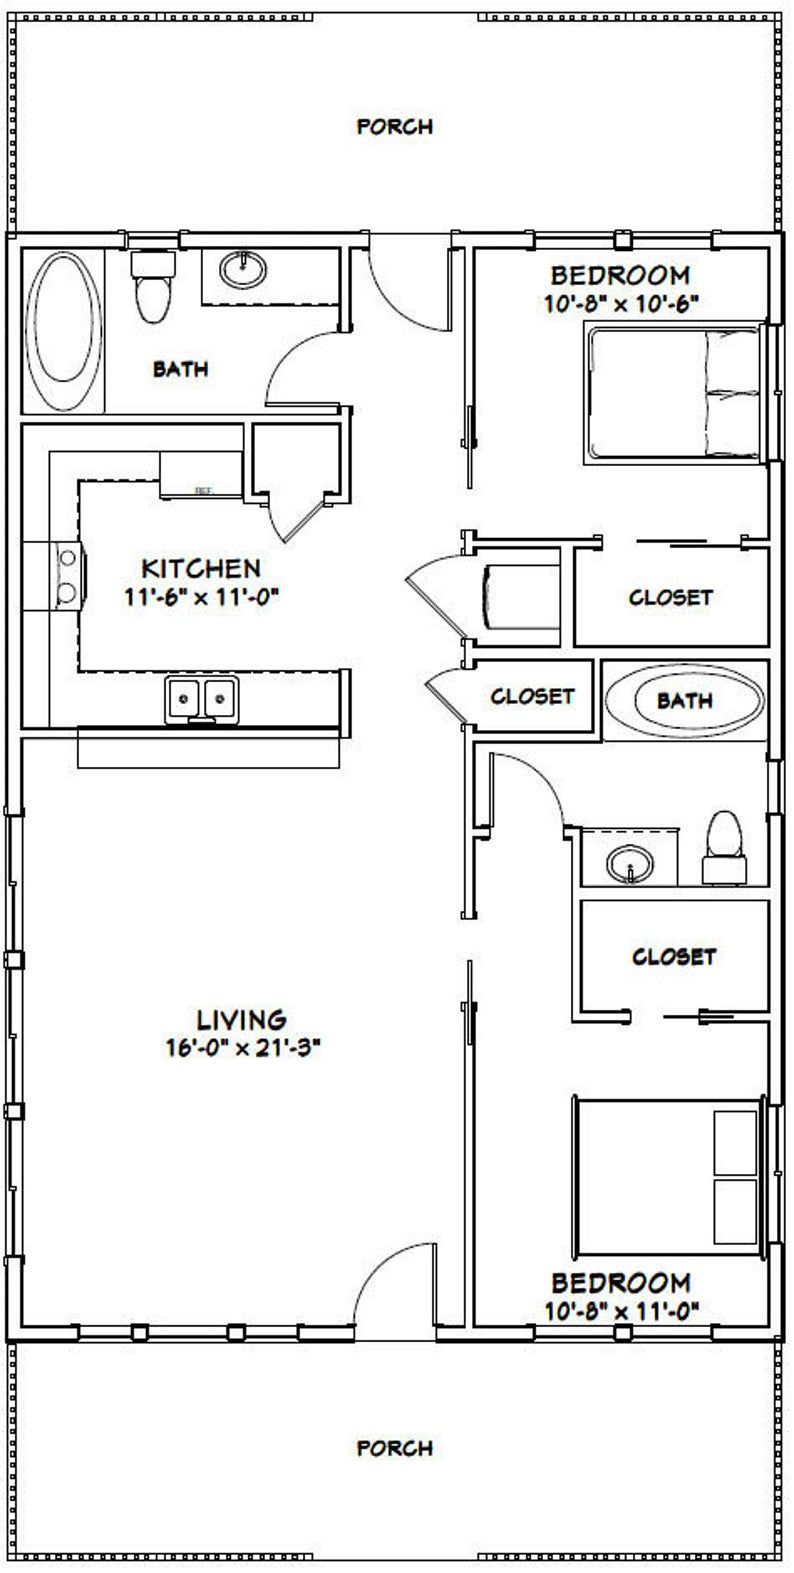 28x40 House 2 Bedroom 2 Bath 1120 Sq Ft Pdf Floor Etsy Tiny House Floor Plans Small House Floor Plans Tiny House Plans